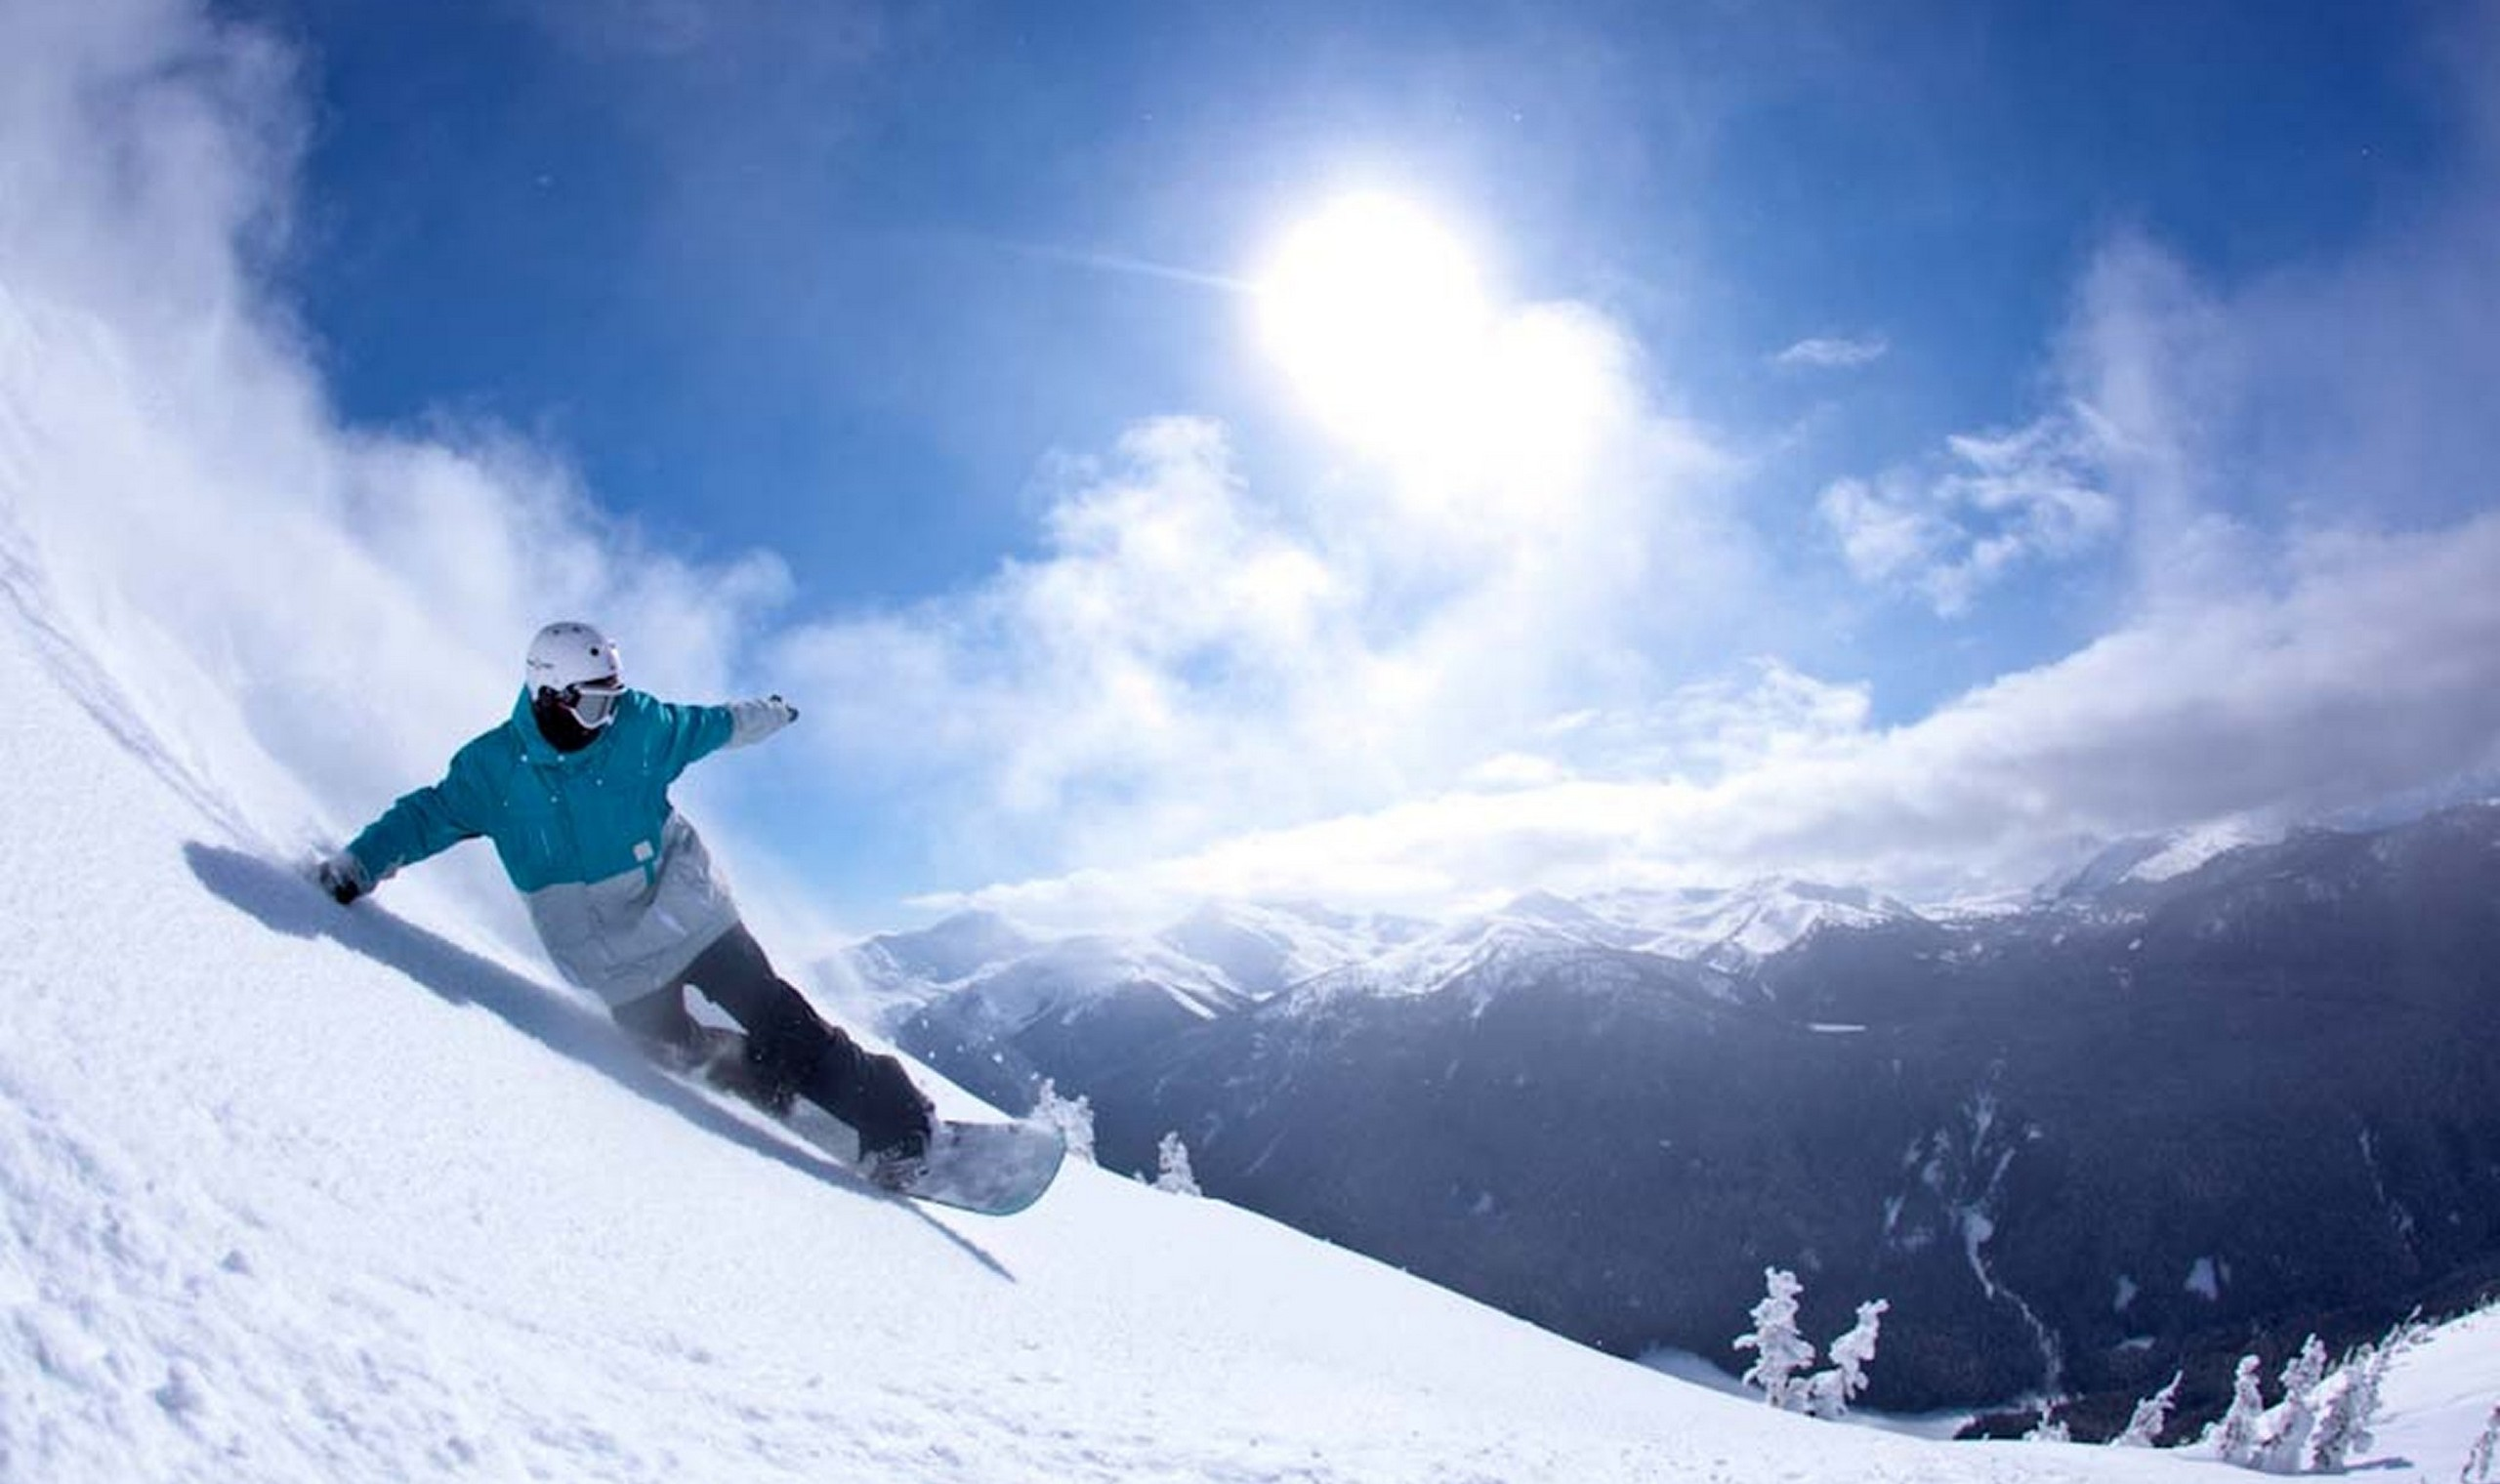 Cool Wallpapers For Iphone 7 Ski Whistler Including Lift Passes Canadian Affair